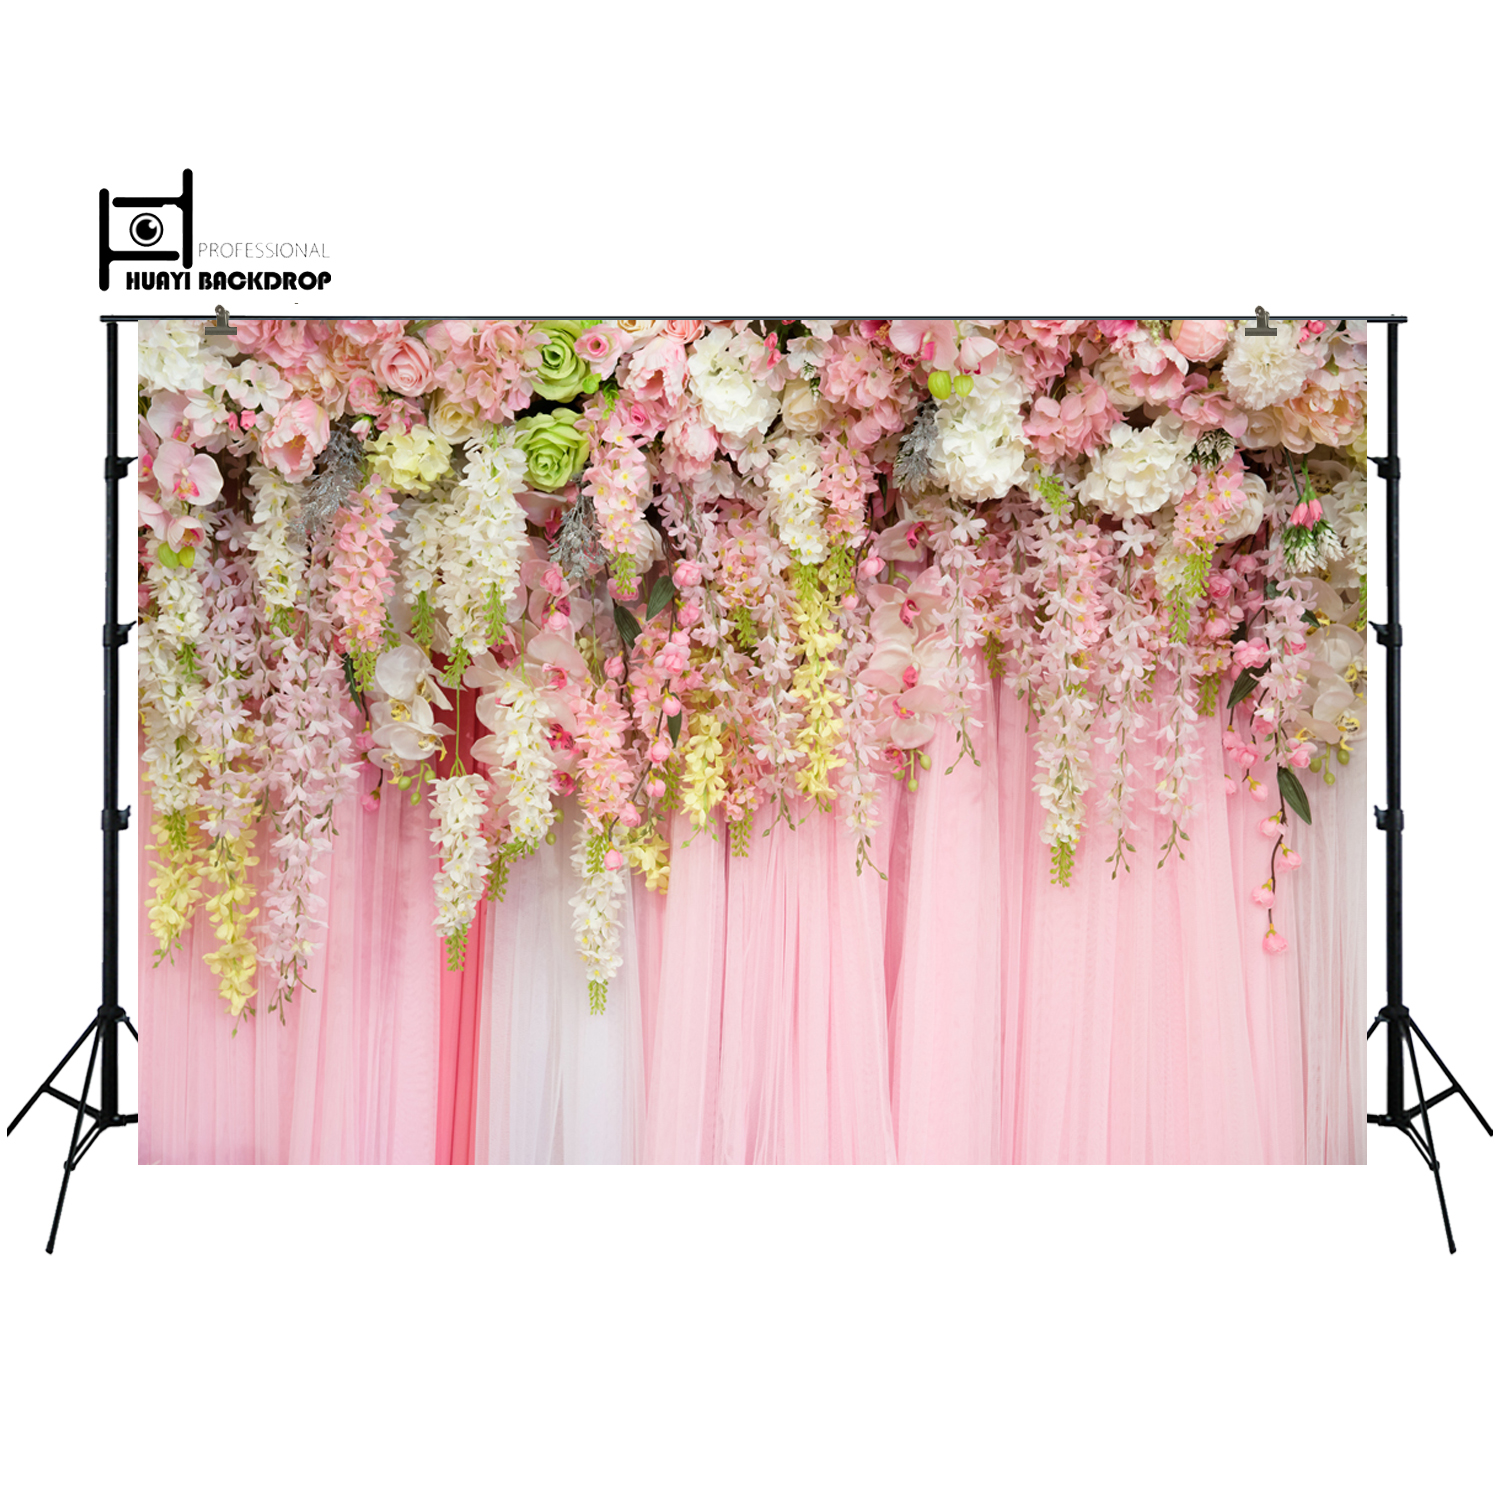 Wedding backdrop flowers wall photography background,birthday party baby shower decor banner floral photo backdrop props XT-6740 hollywood banner backdrop high quality vinyl cloth computer printed party wedding backdrop photography studio background